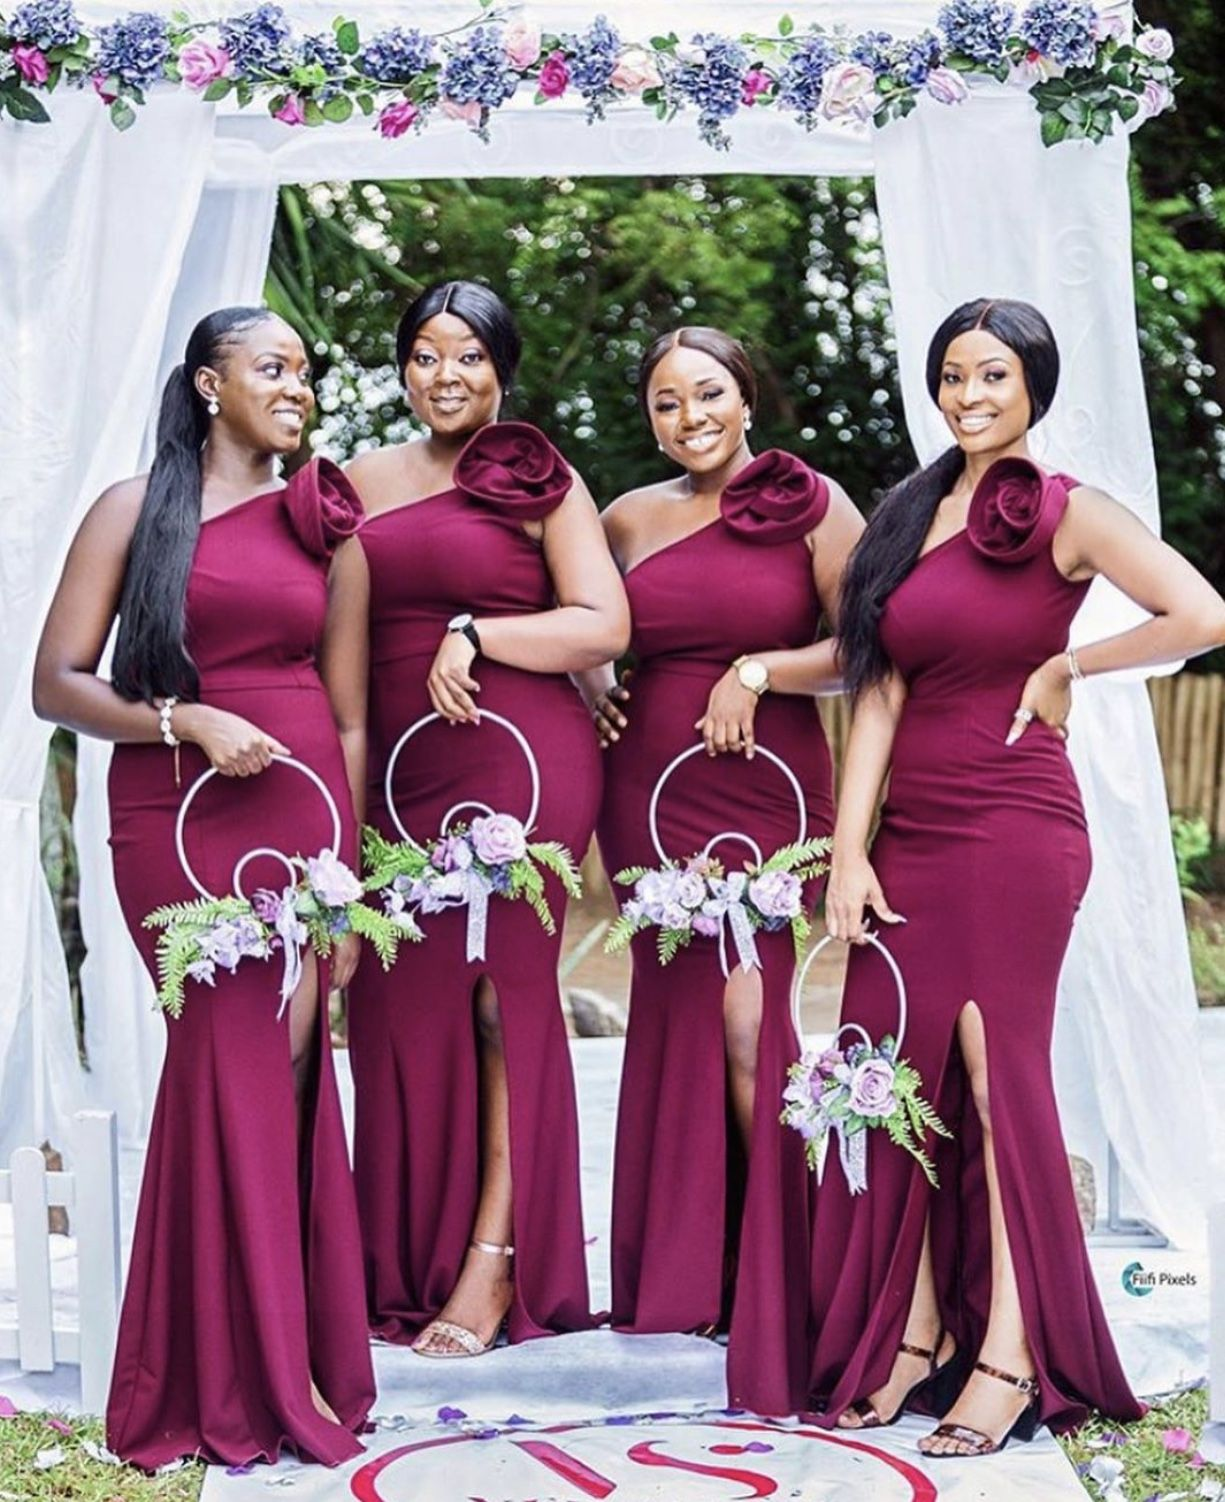 Pin By D On The Proposal Engagement Wedding Day In 2020 Stylish Wedding Dresses African Bridesmaid Dresses Nigerian Bridesmaid Dresses